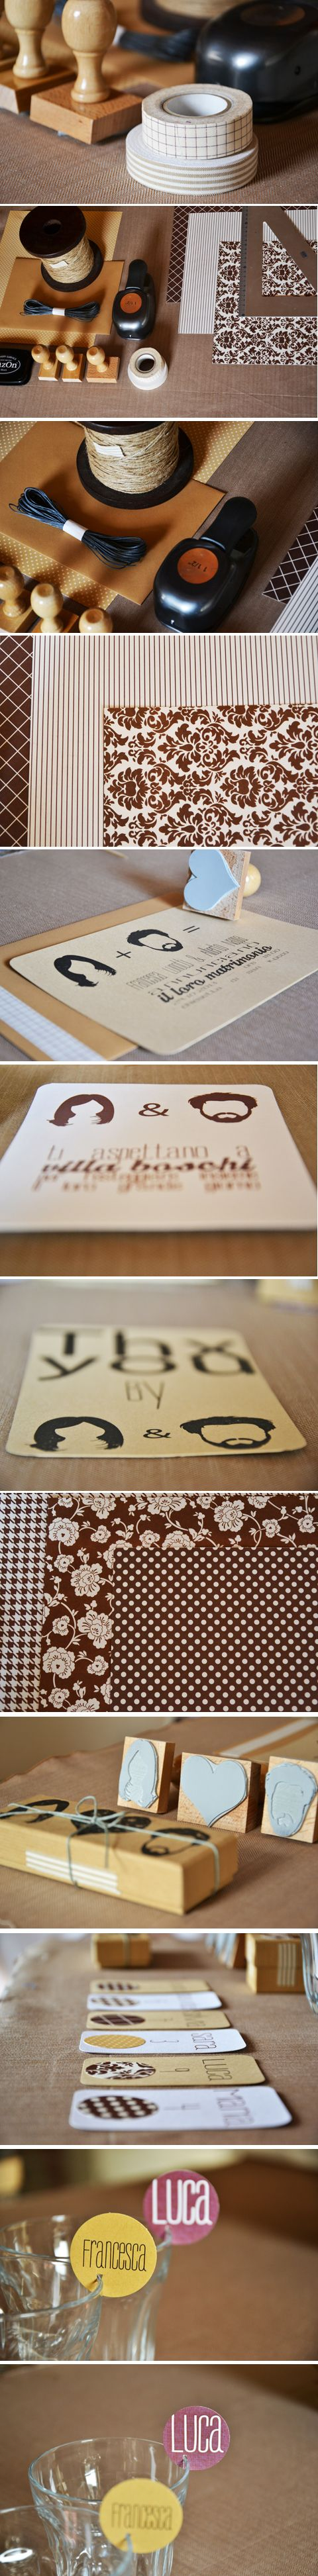 Silvia Lana | Iciban - Italy - Wedding stationery, Craft